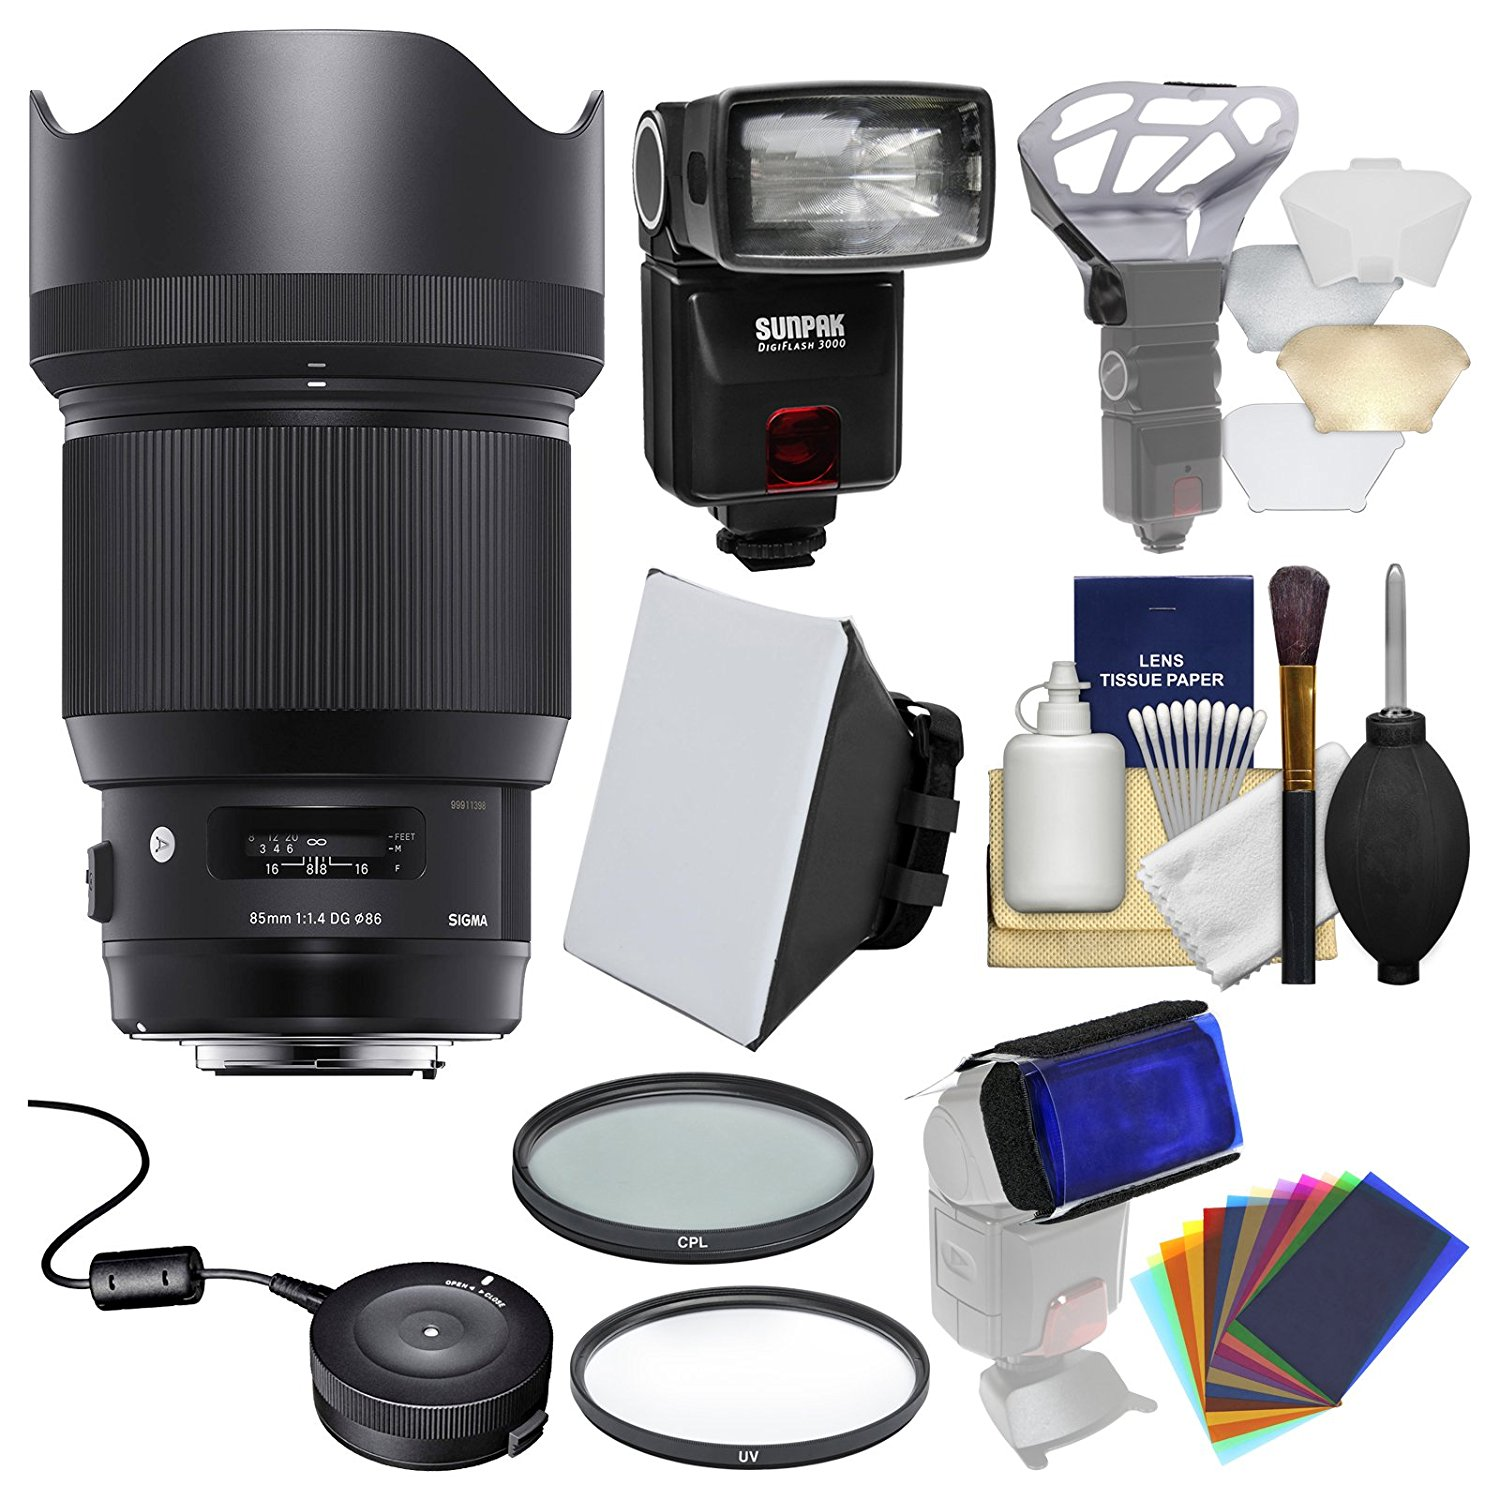 Sigma 85mm f/1.4 ART DG HSM Lens with USB Dock + Flash + 2 (UV/CPL) Filters + Soft Box + Diffuser Bouncer + Kit for Canon EOS Digital SLR Cameras